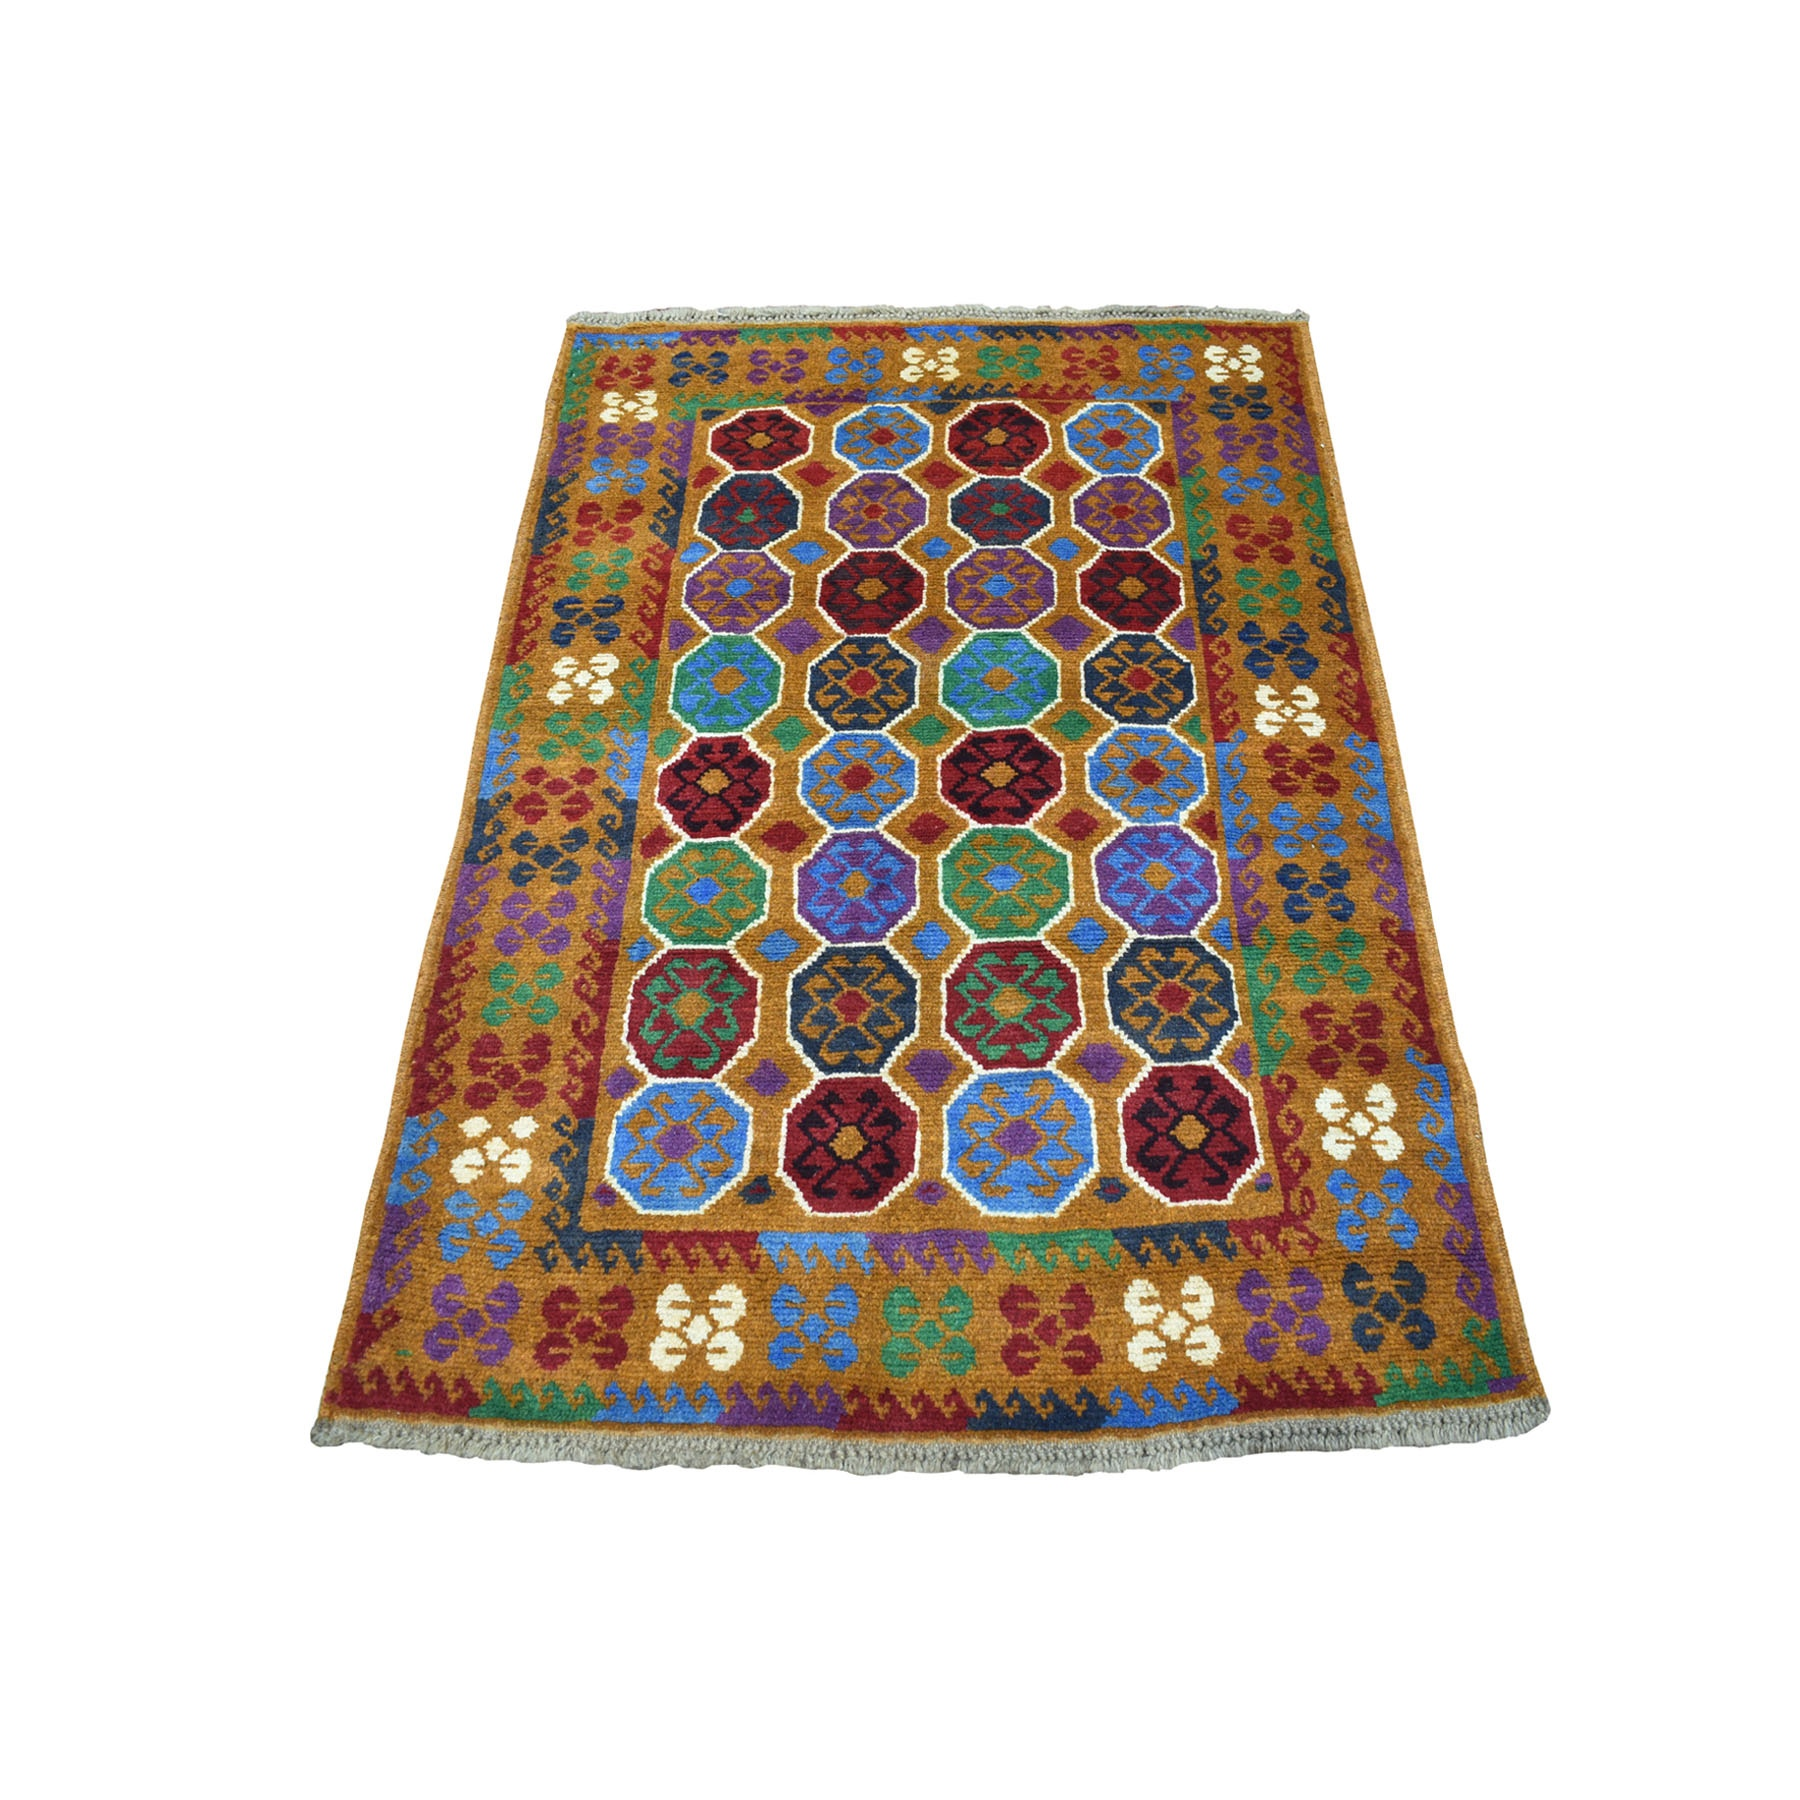 "3'6""x4'9"" Brown Colorful Afghan Baluch Elephant Feet Design Hand Knotted 100% Wool Oriental Rug"